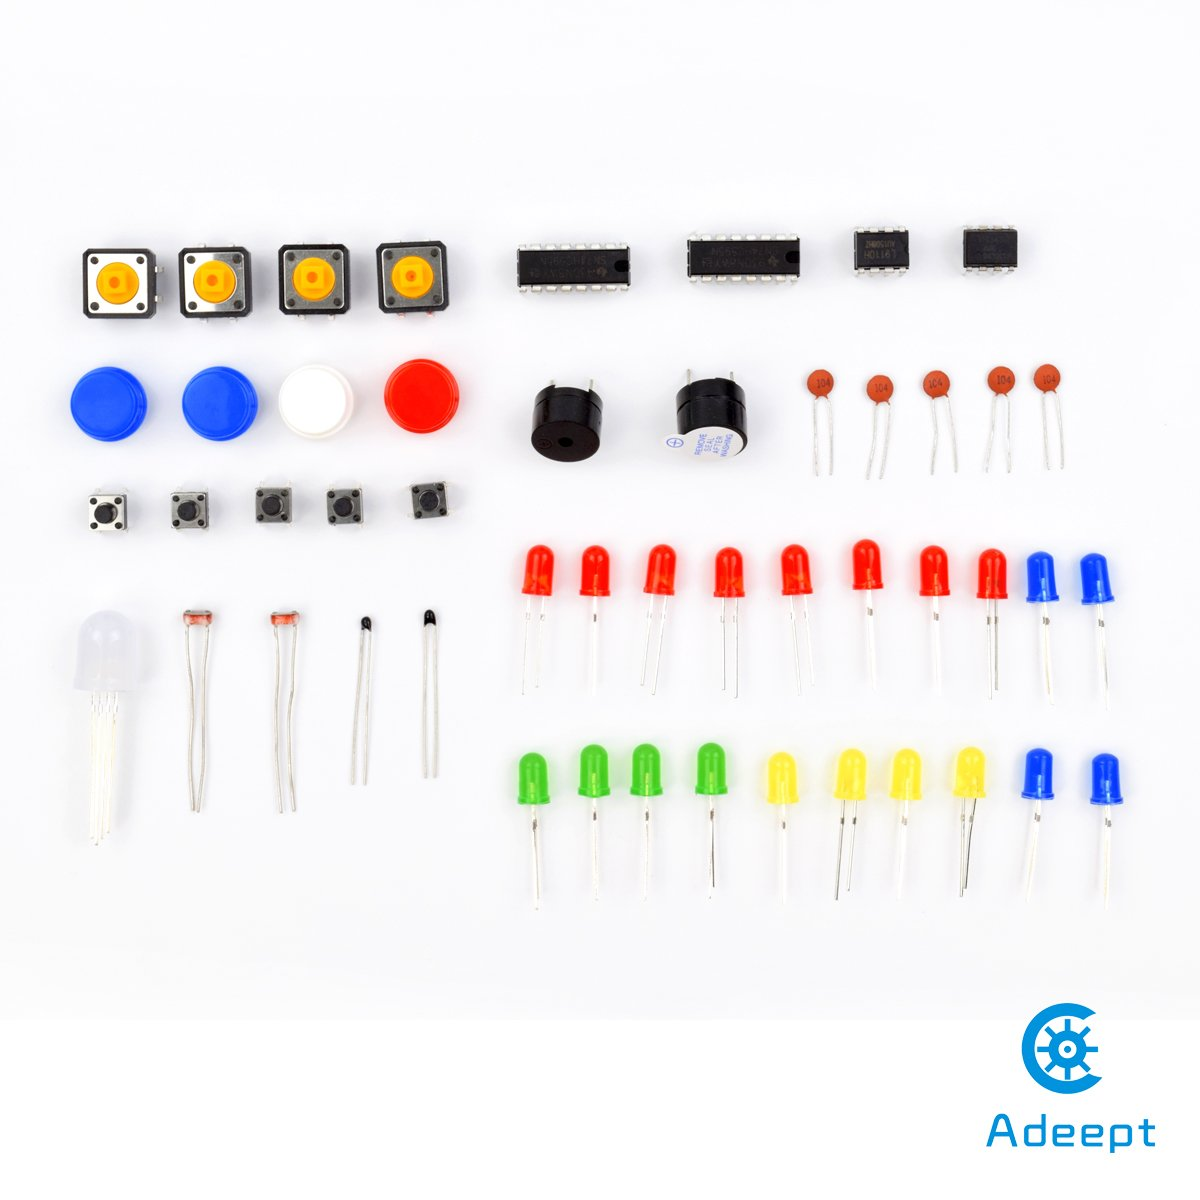 Adeept New Ultimate Starter Learning Kit For Raspberry Wiringpi Pin Numbers B Pi 3 2 Model Python Adxl345 Gpio Cable Dc Motor Computers Accessories